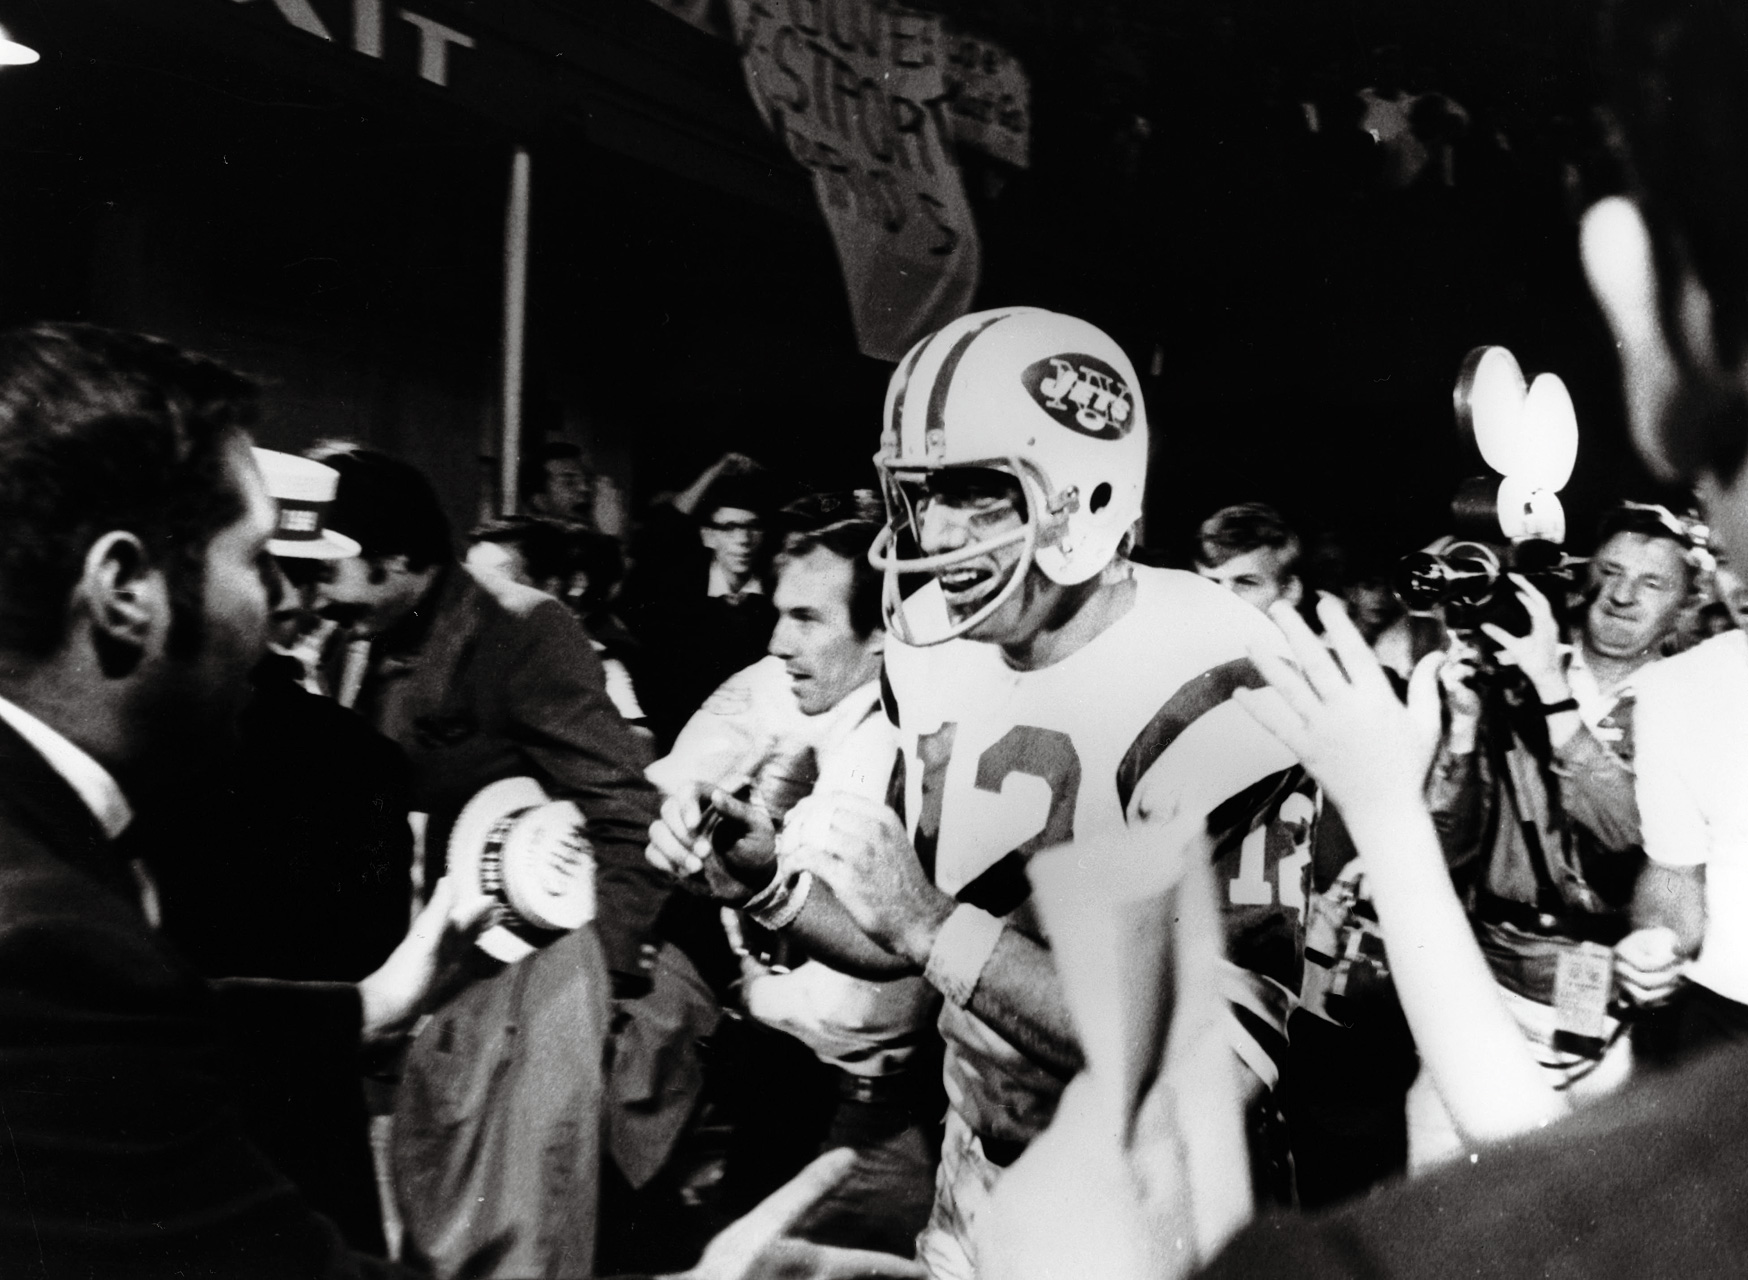 Joe Namath - Super Bowl III (17/28, 206 yards)